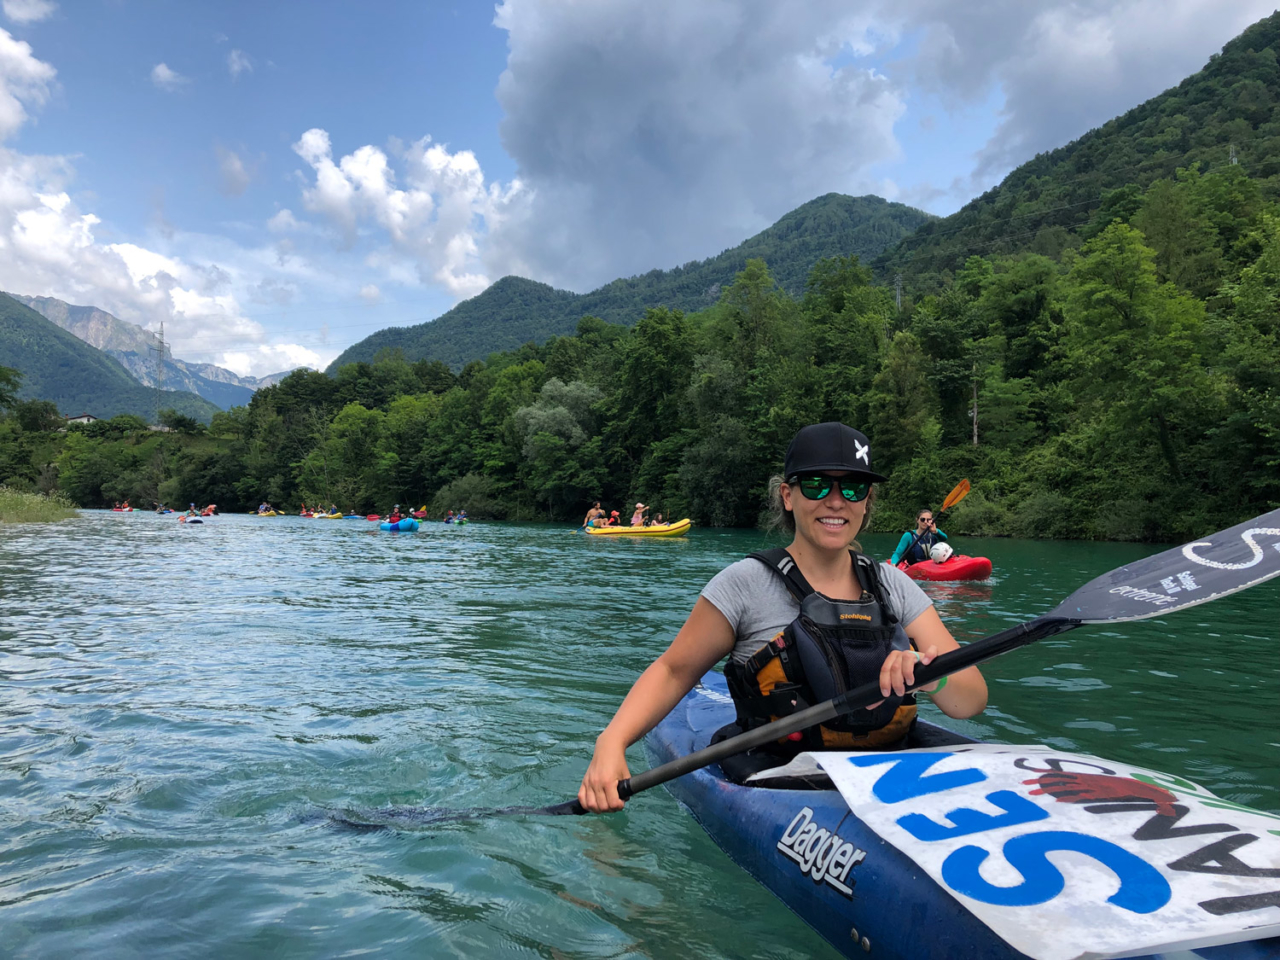 Paddling with 150 other river-lovers from our base camp to a reservoir at Most na Soči, where we held the Free Soča flotilla asking for the removal of a dam on this emerald beauty and setting a new standard for Balkan rivers. Photo: Primož Knap